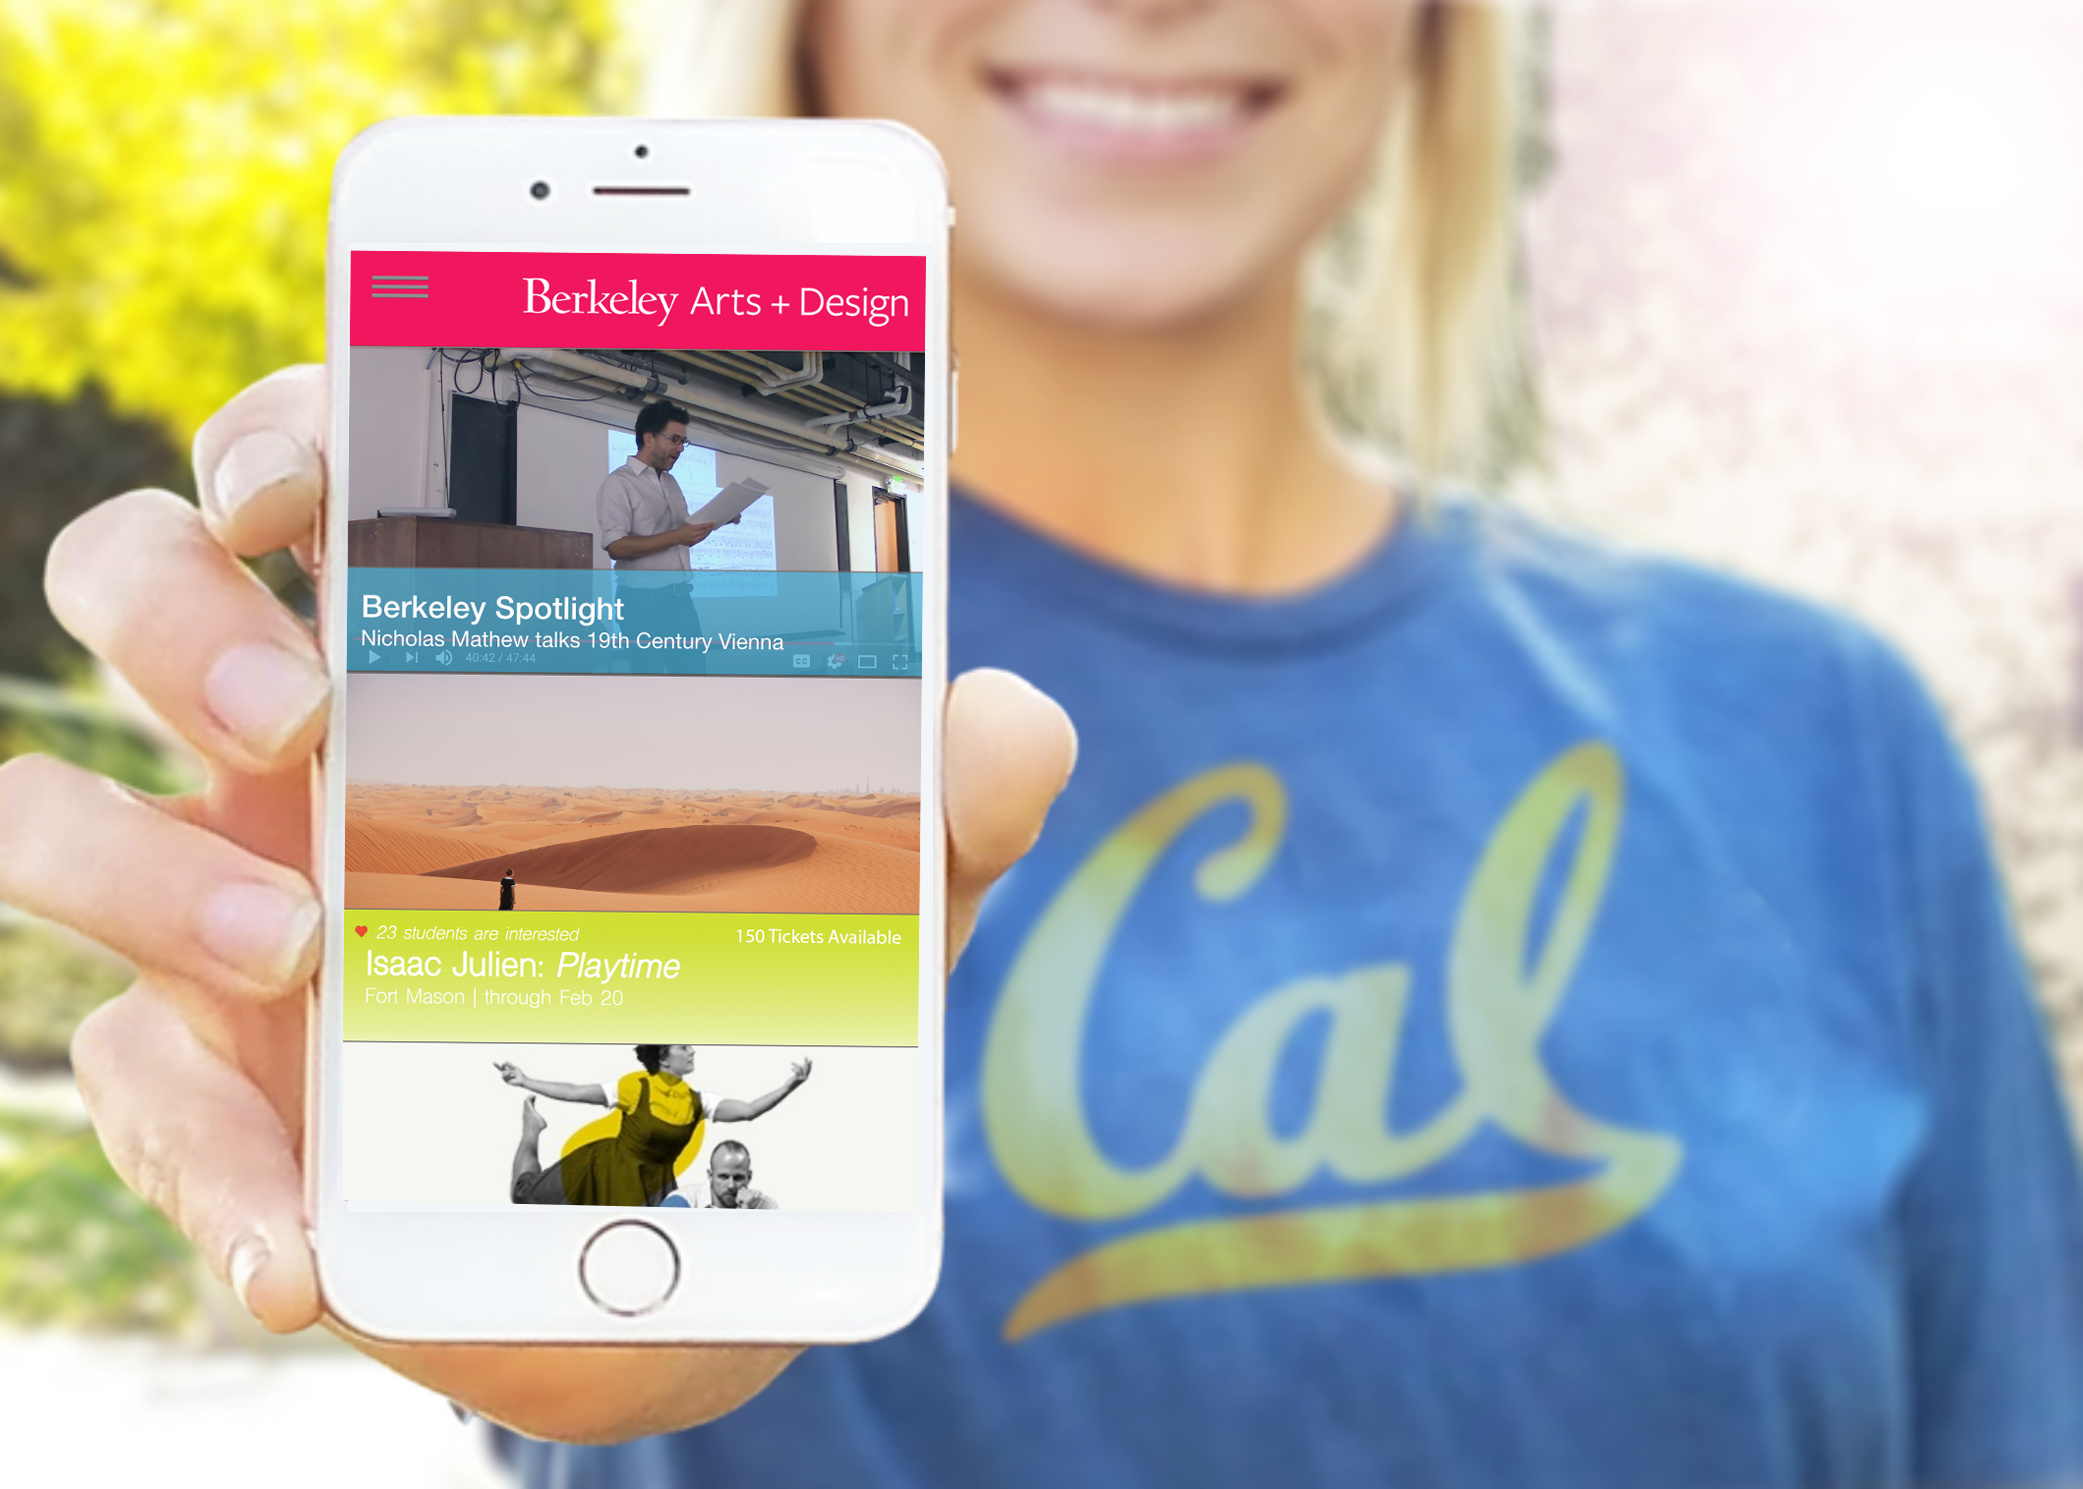 Official UC Berkeley Campus app